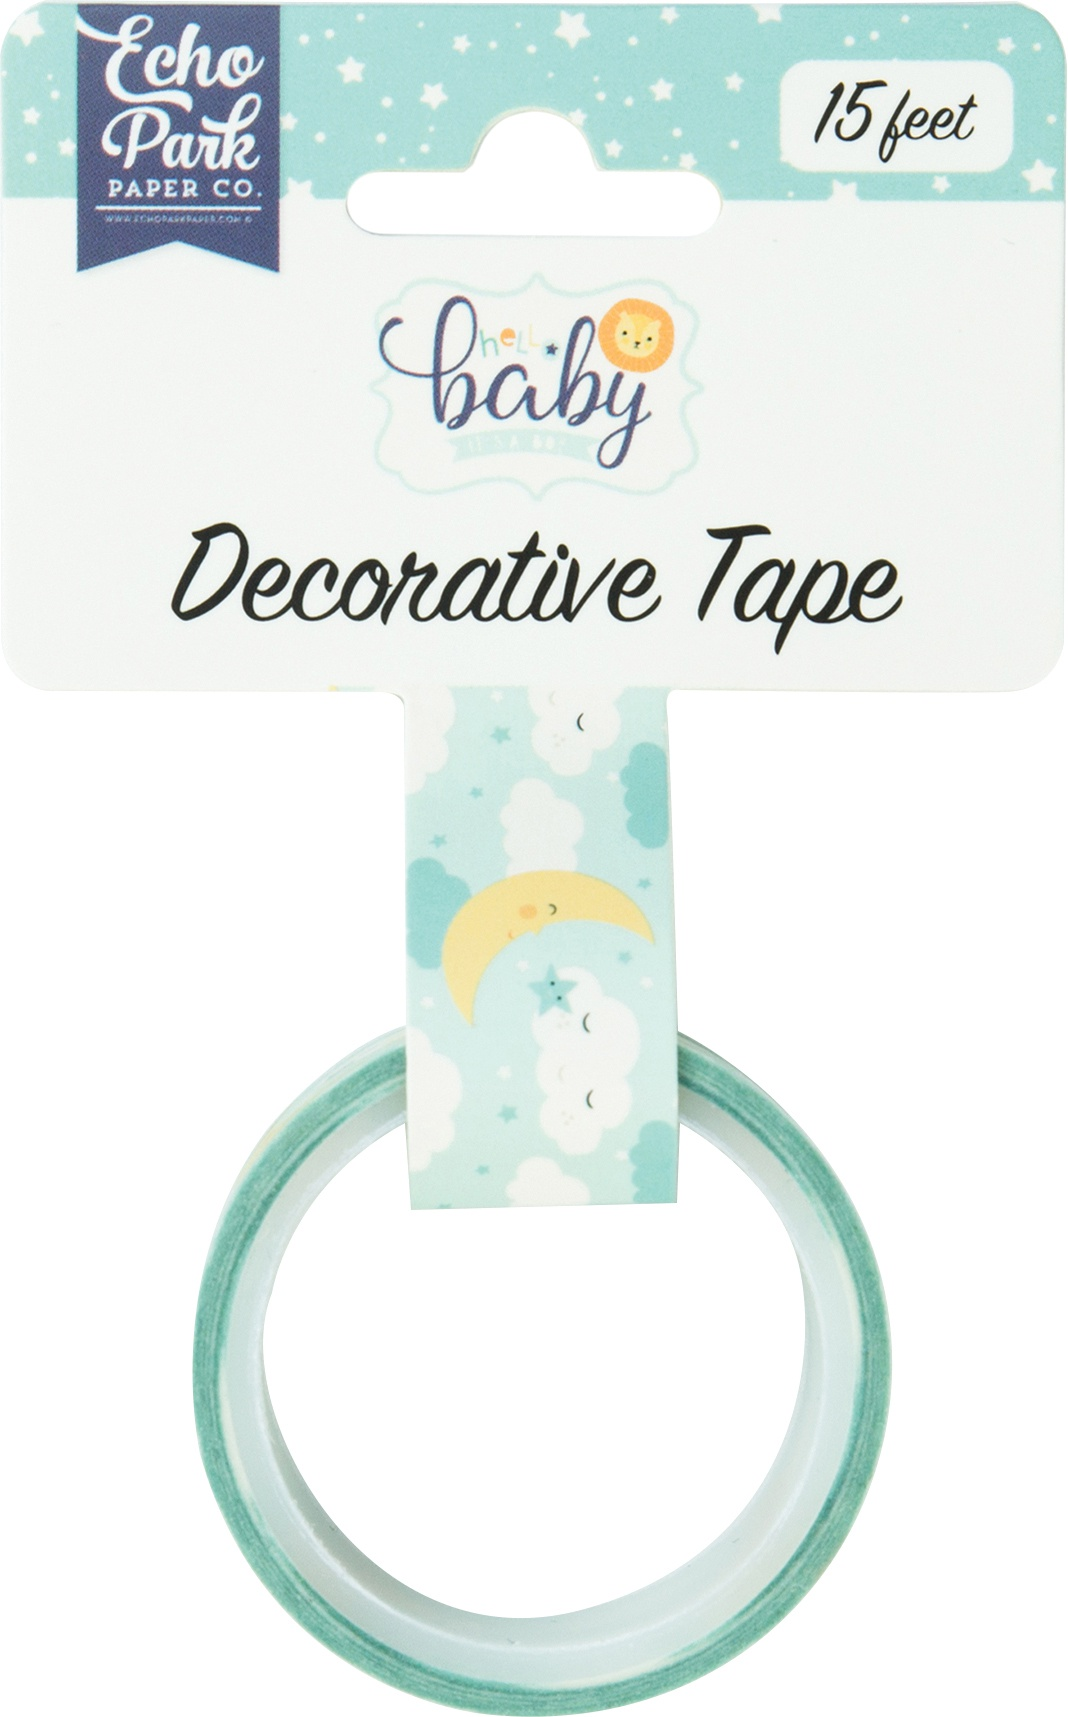 EMB - HELLO BABY IT'S A BOY WASHI TAPE SLEEP TIGHT